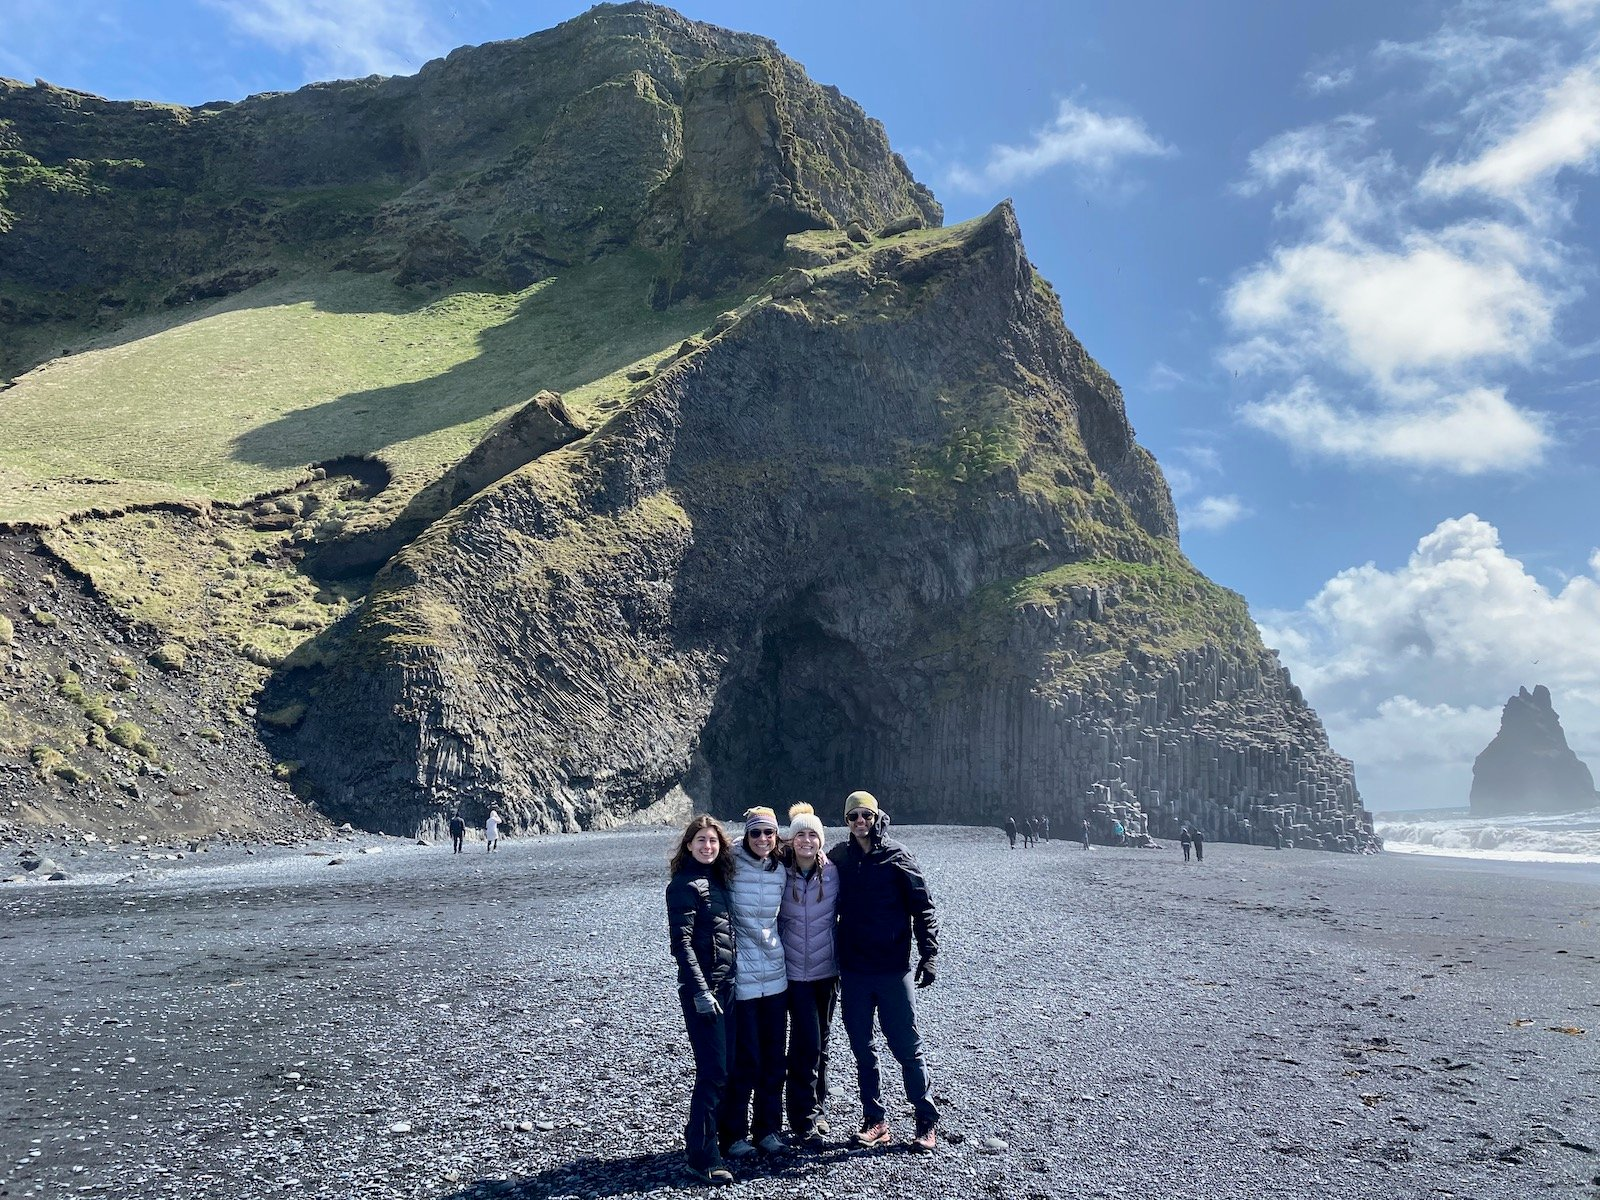 Family posing on beach in front of Basalt Columns in Iceland.